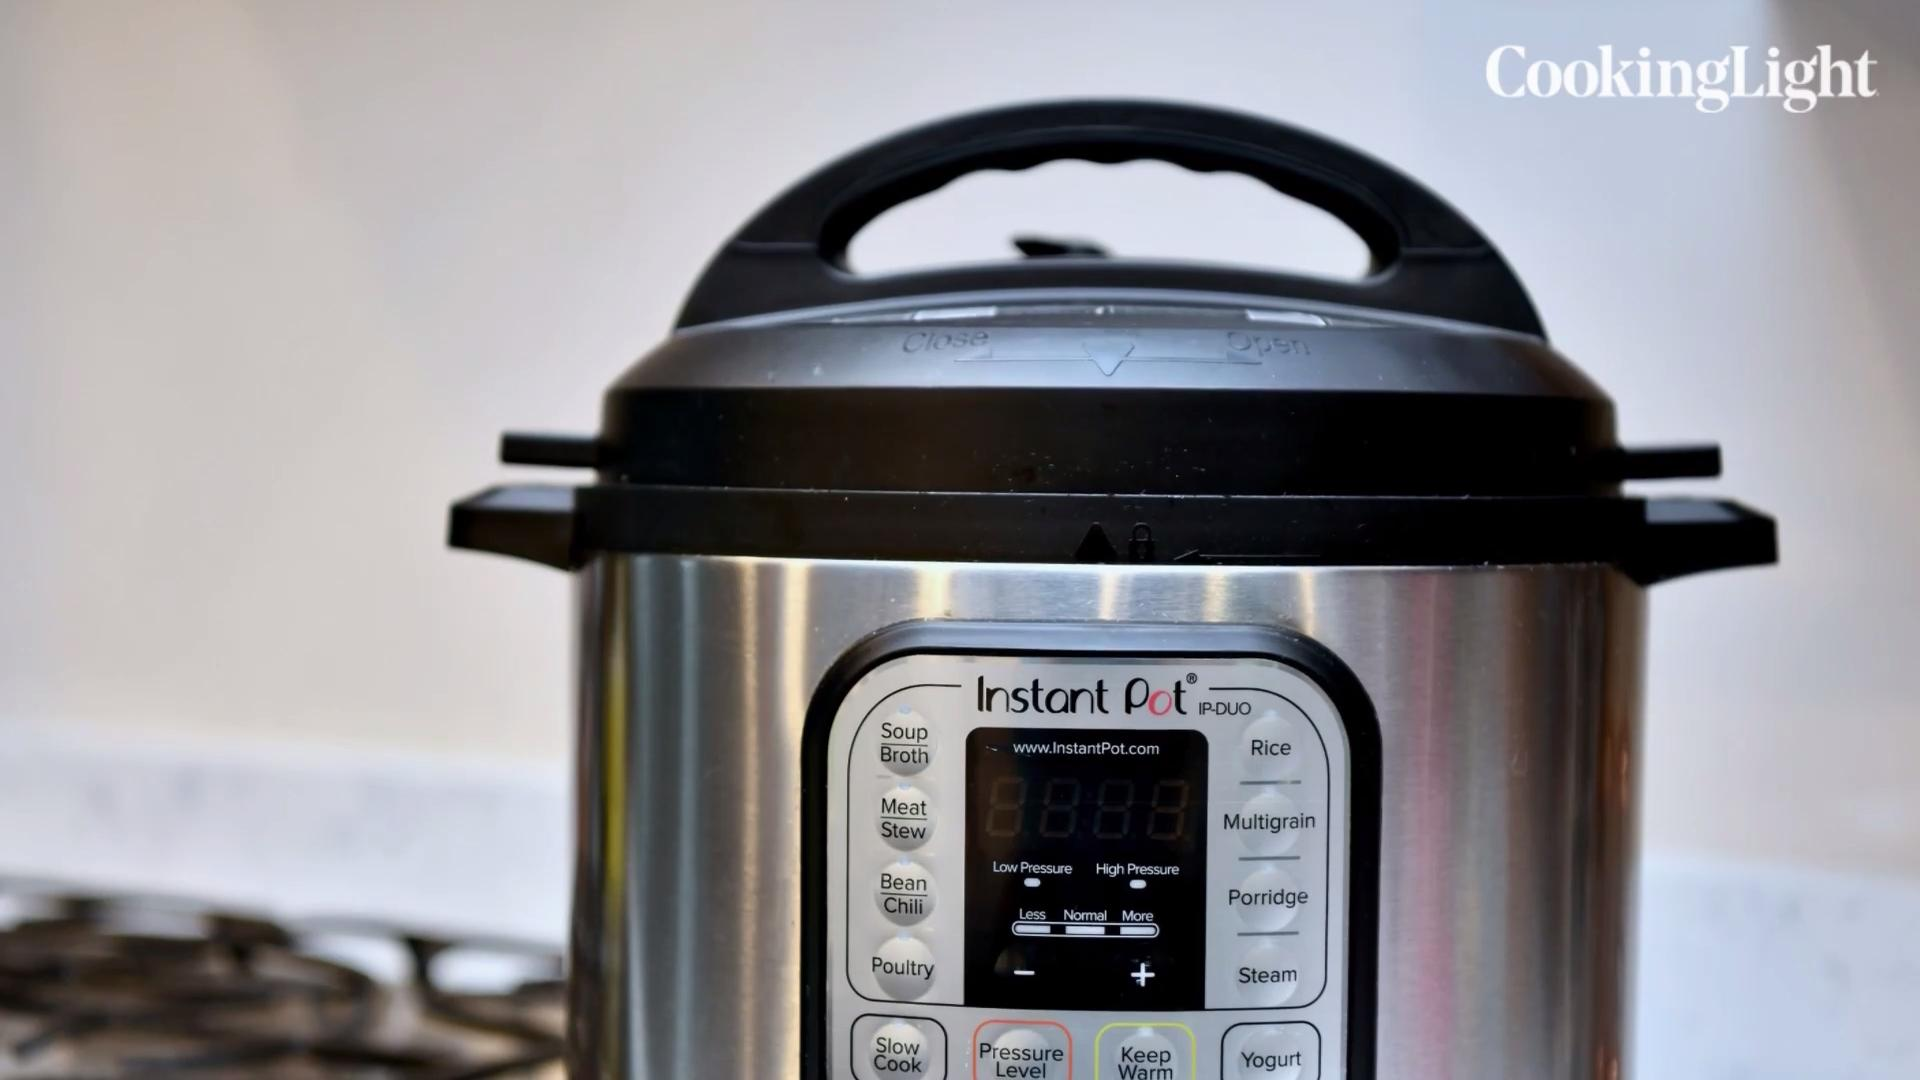 Why You Should Not Use Your Instant Pot As A Slow Cooker